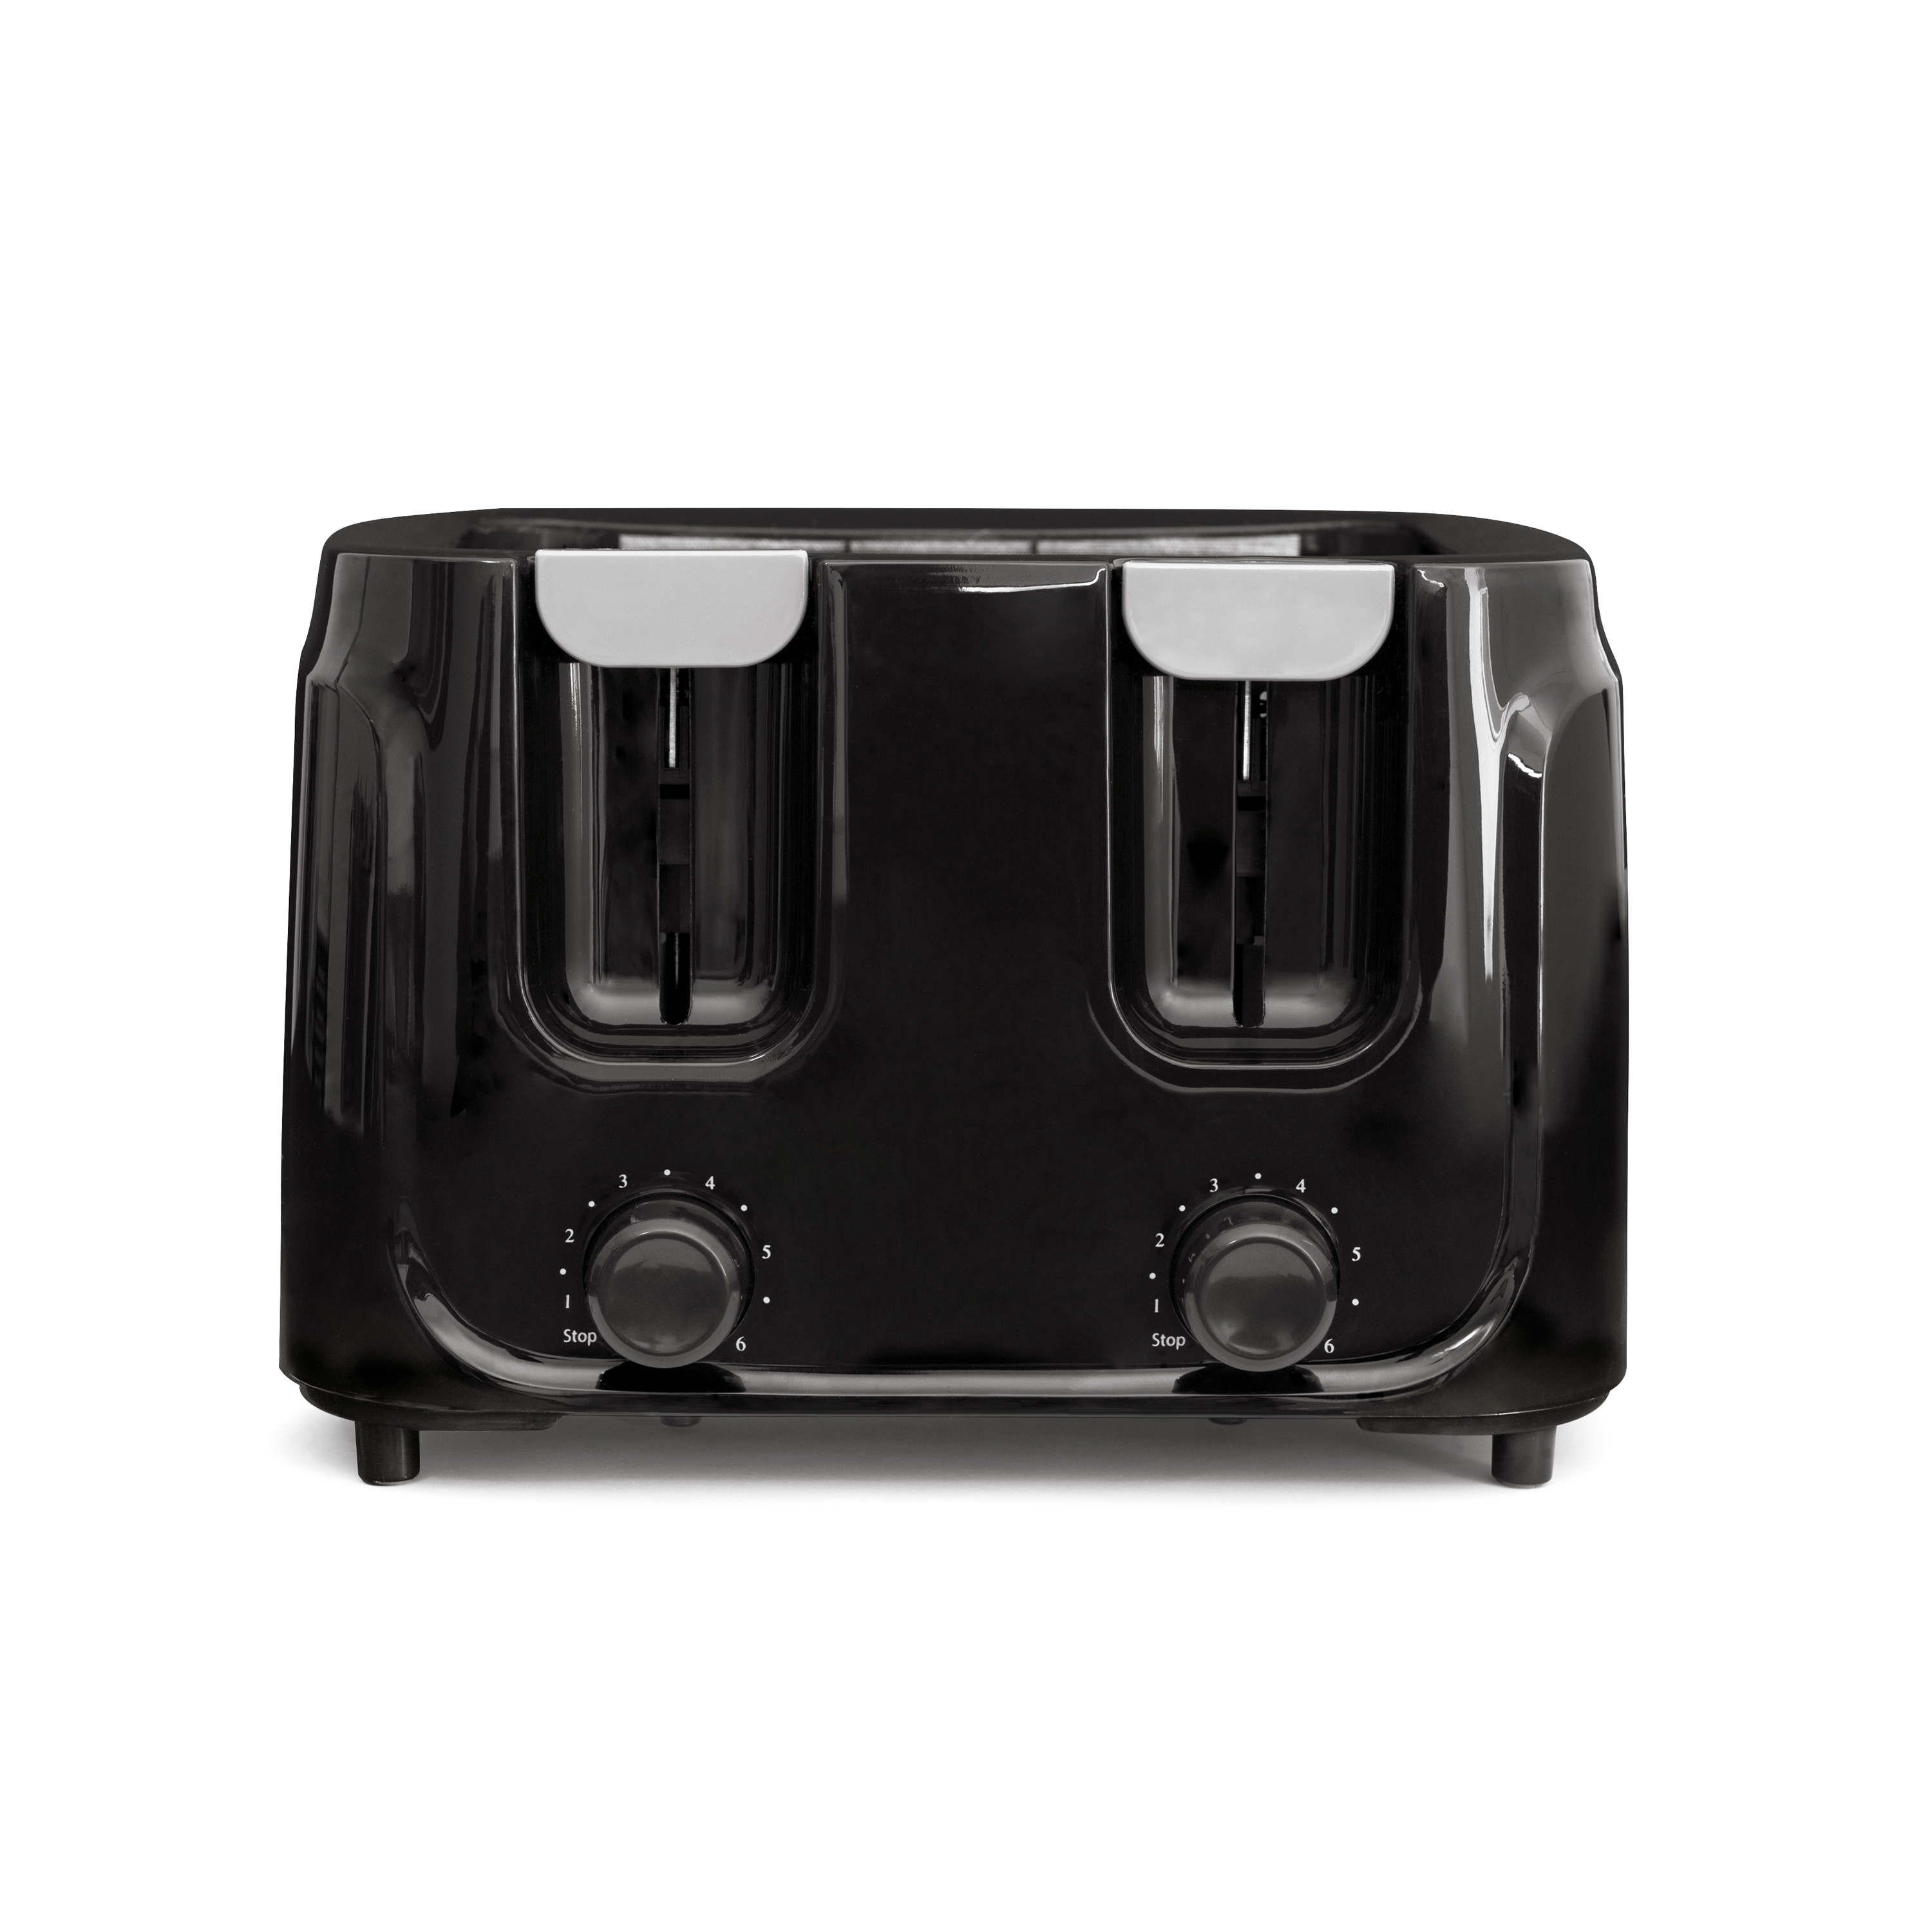 Mainstays Ms 4 Slice Toaster, Black